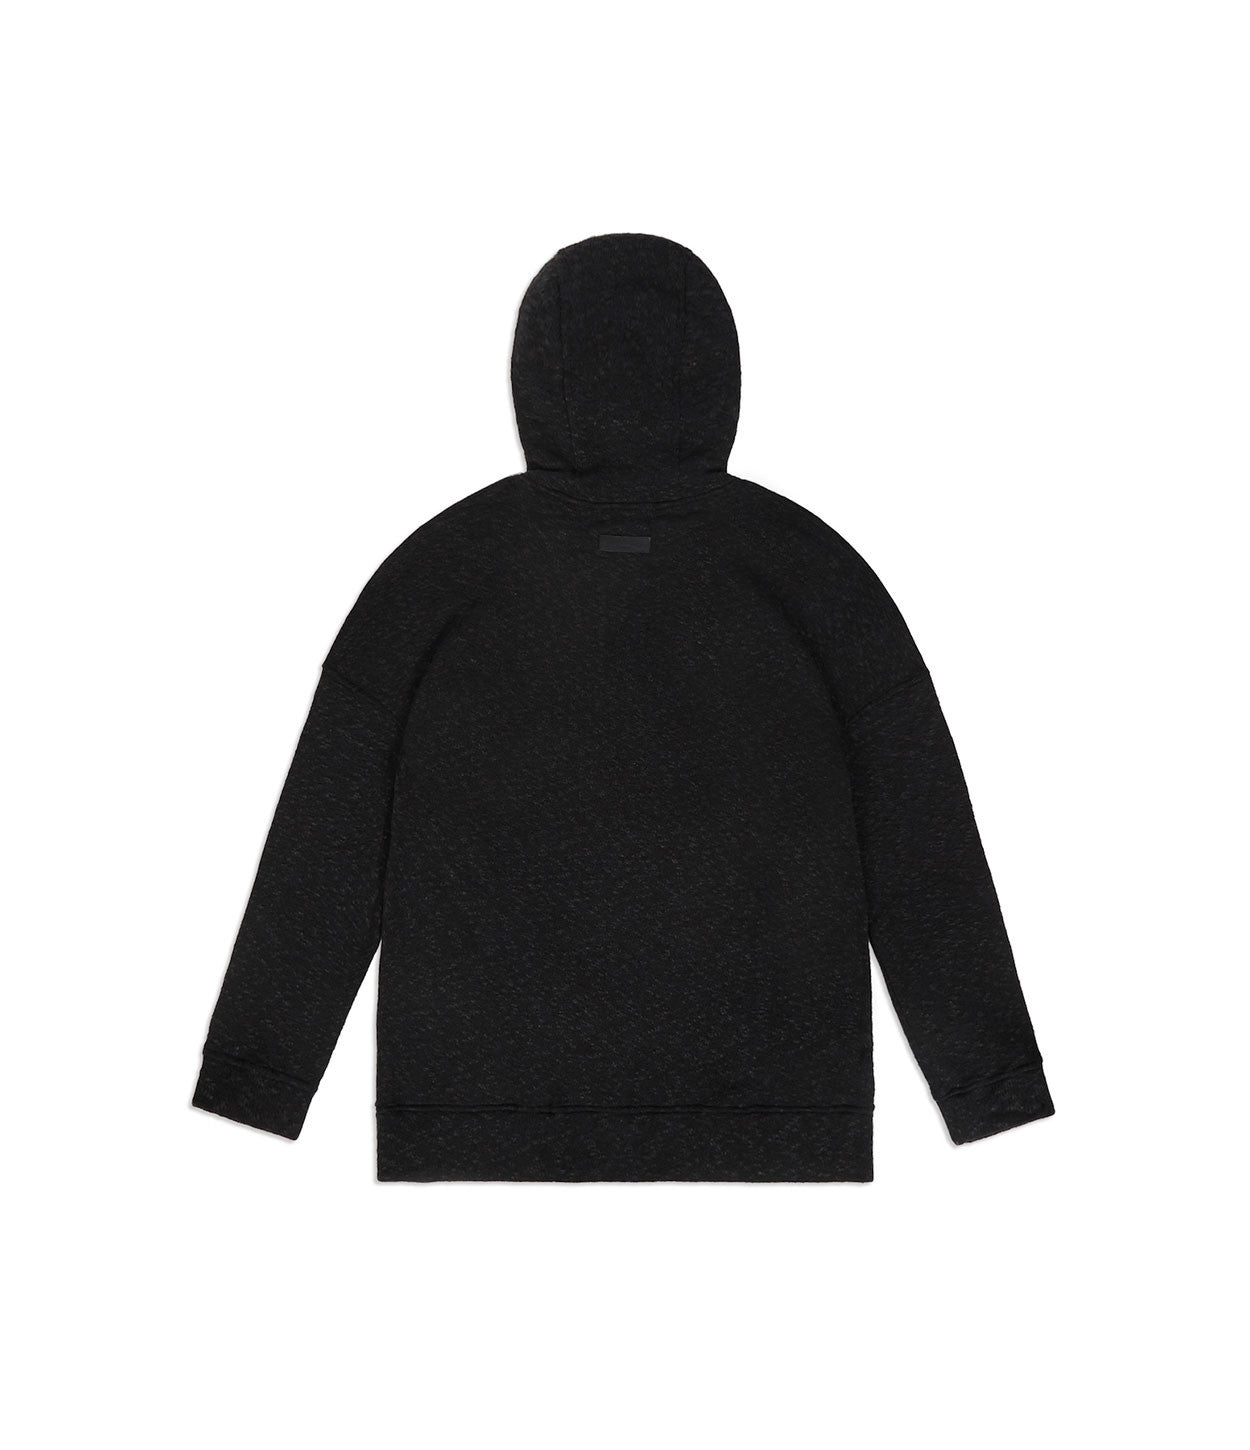 HD378 Oversized Knit Hoody - Charcoal/Black - underated london - underatedco - 1